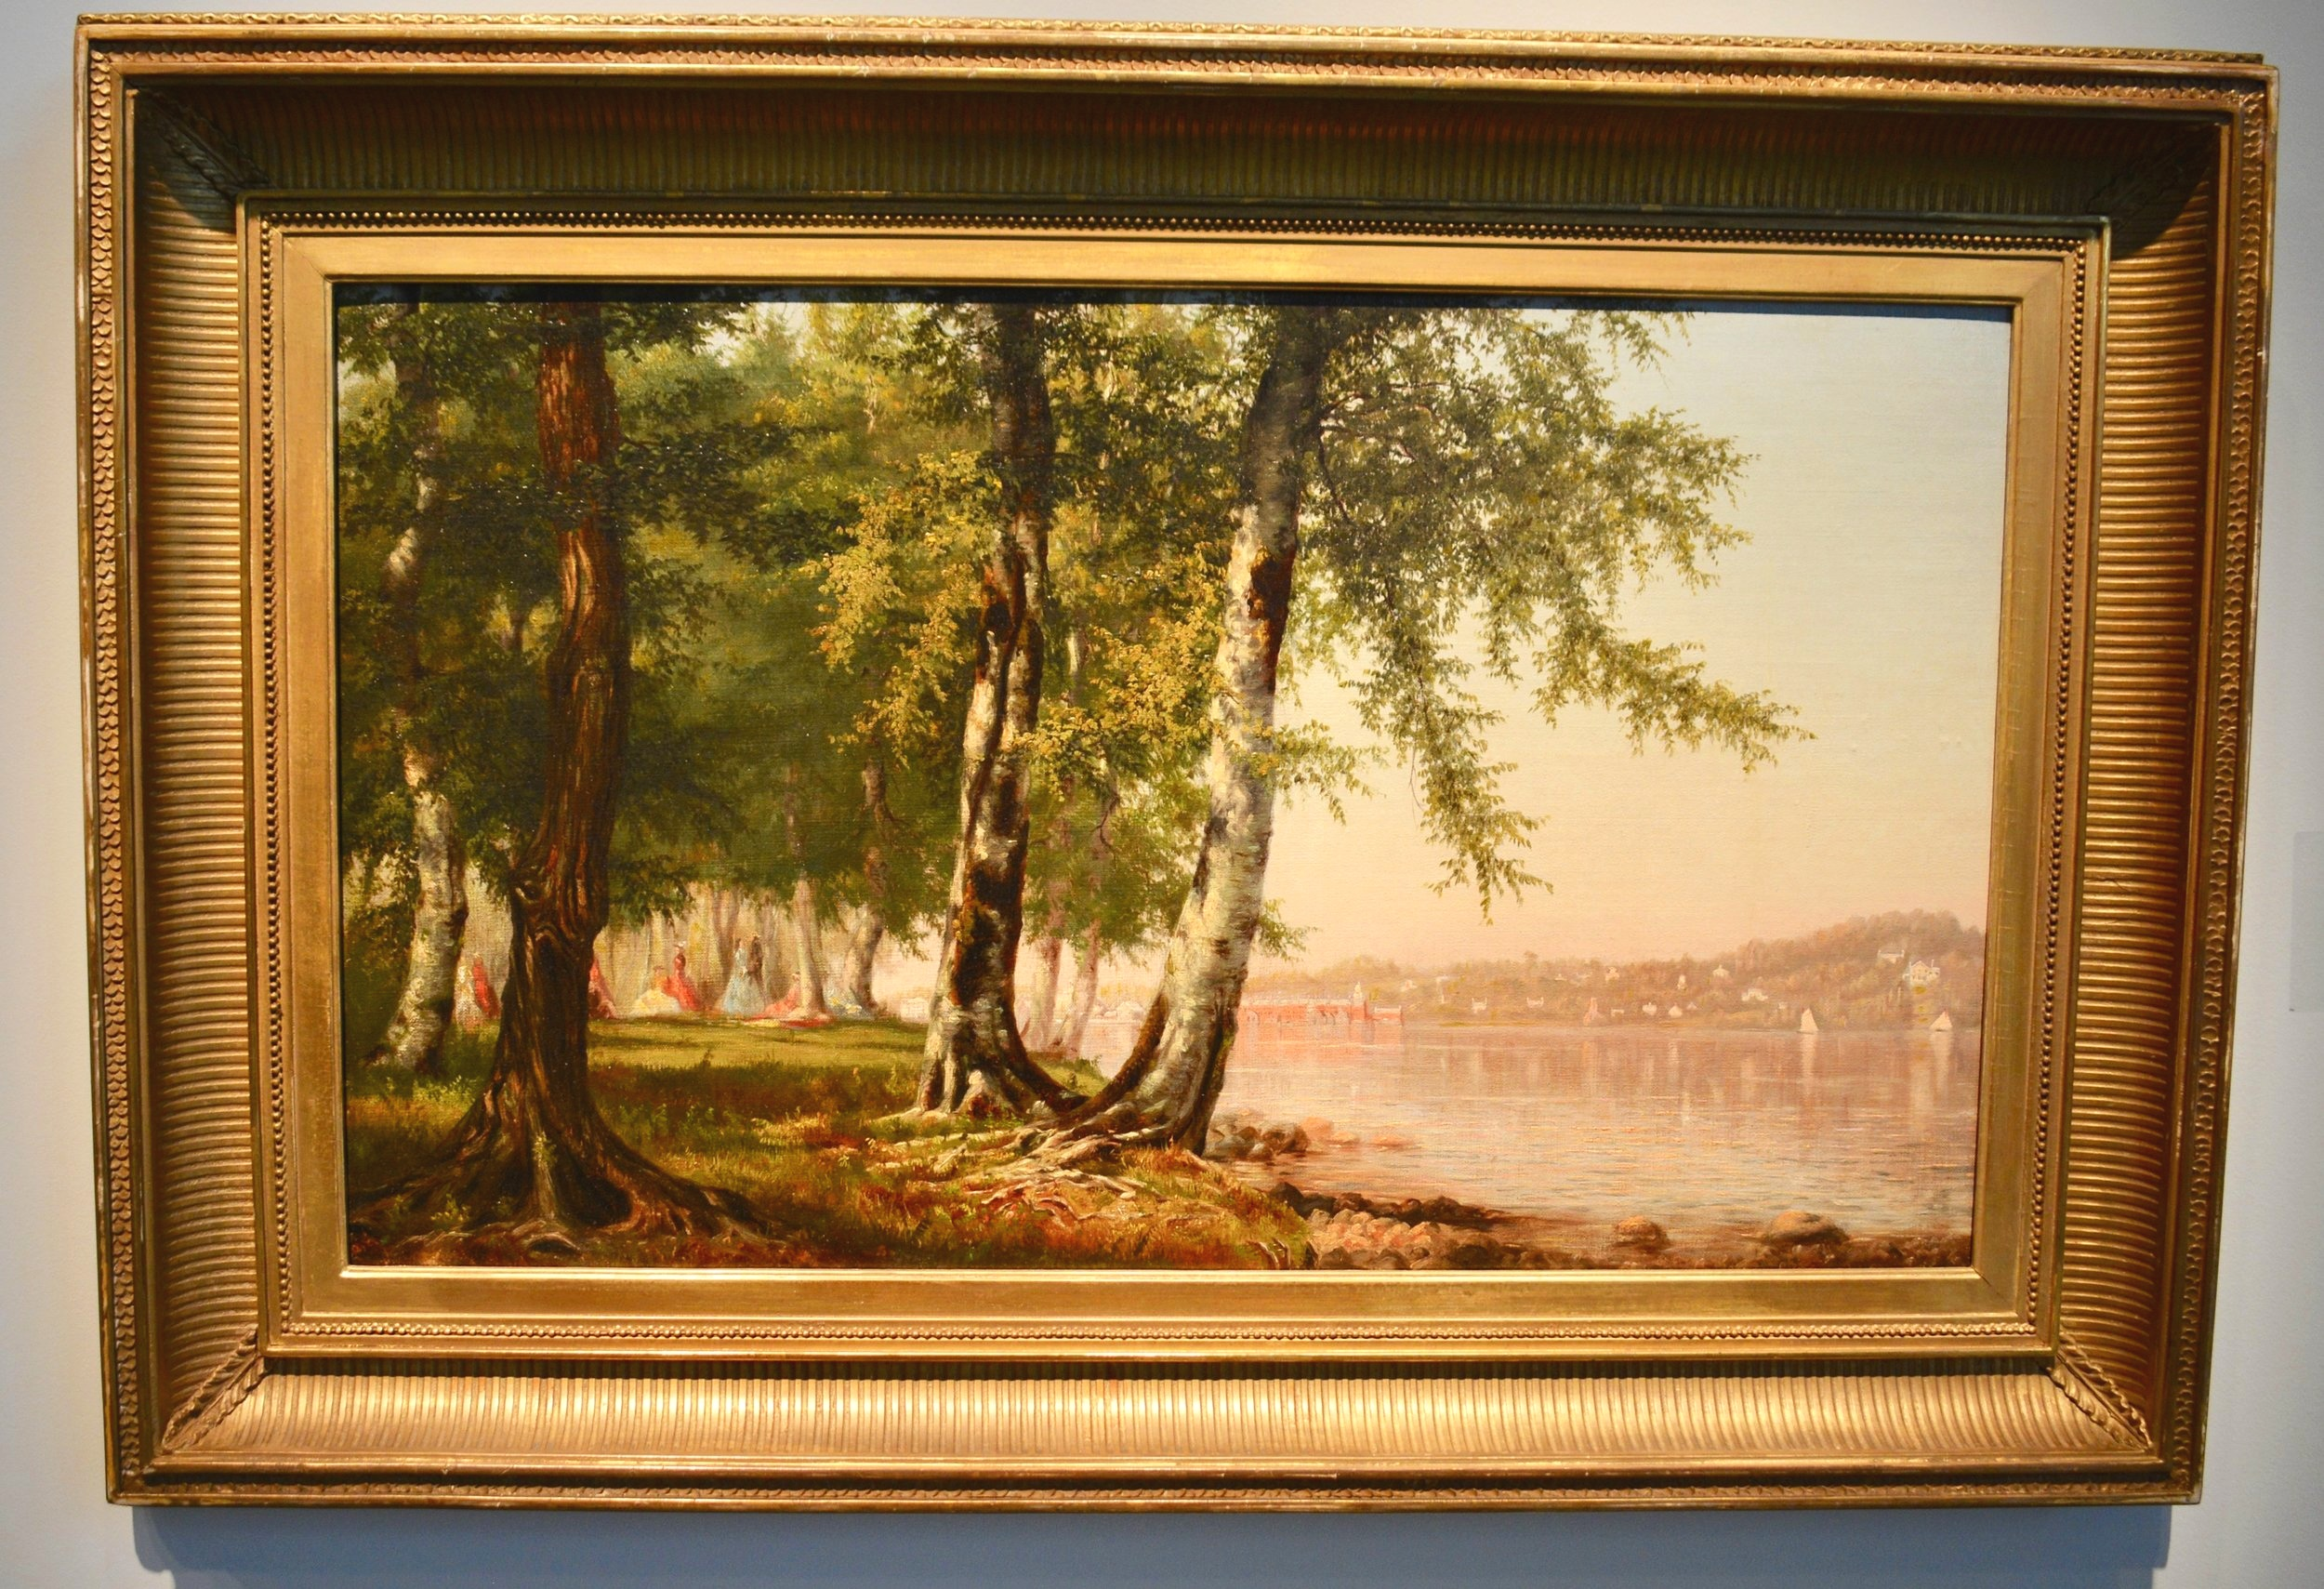 Picnic on the Hudson by Worthington Whittredge